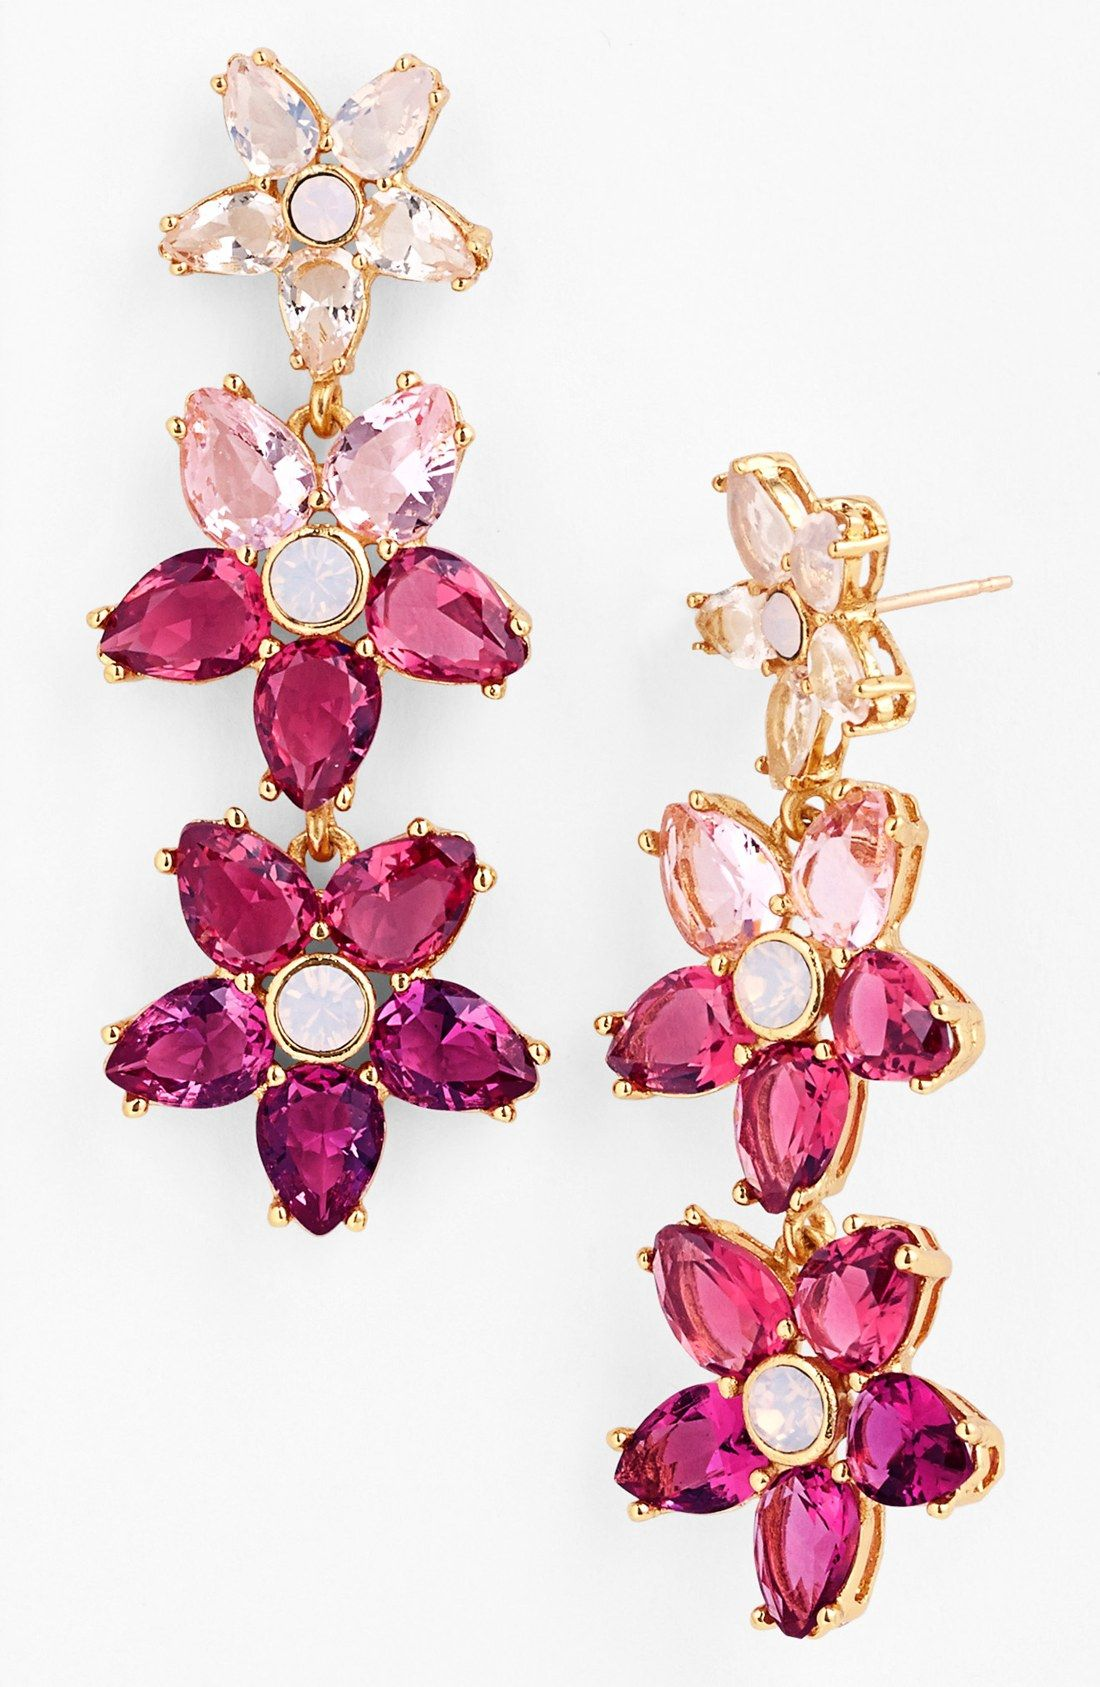 These Pink Kate Spade Earrings Were Made To Sparkle